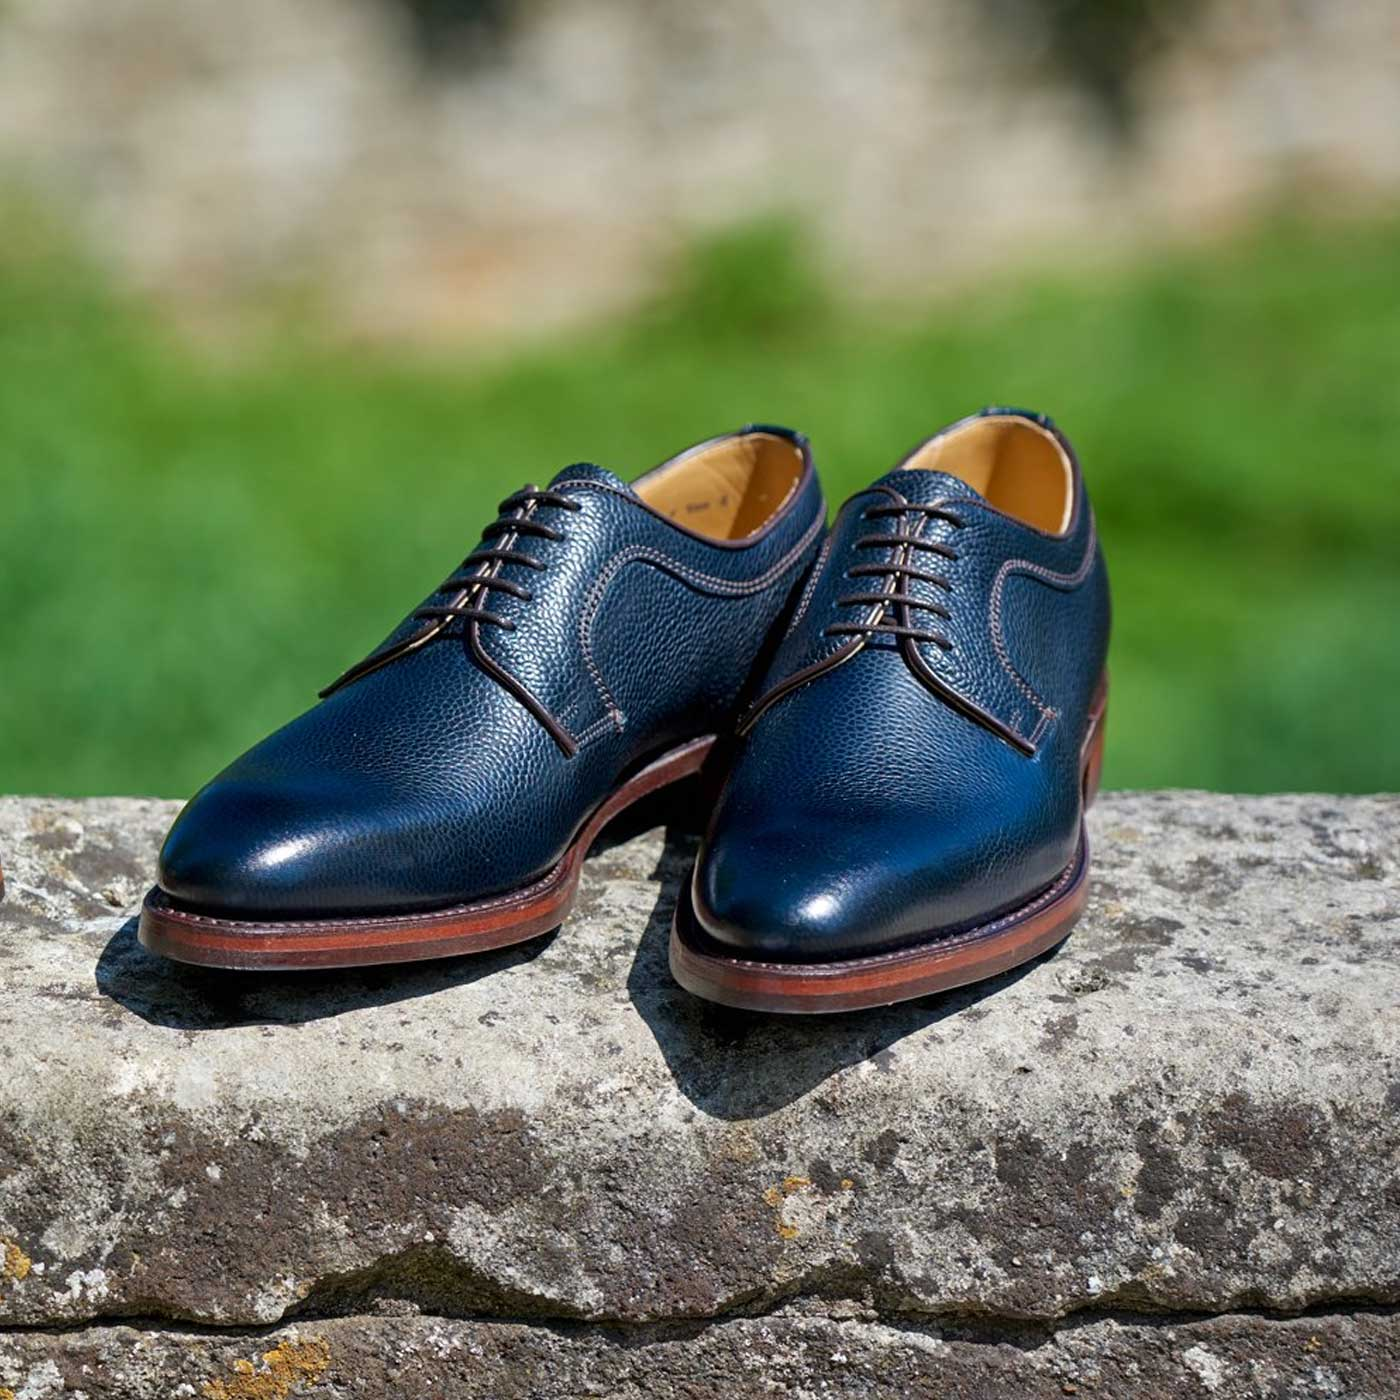 Skye - Men's handmade derby shoe by Barker